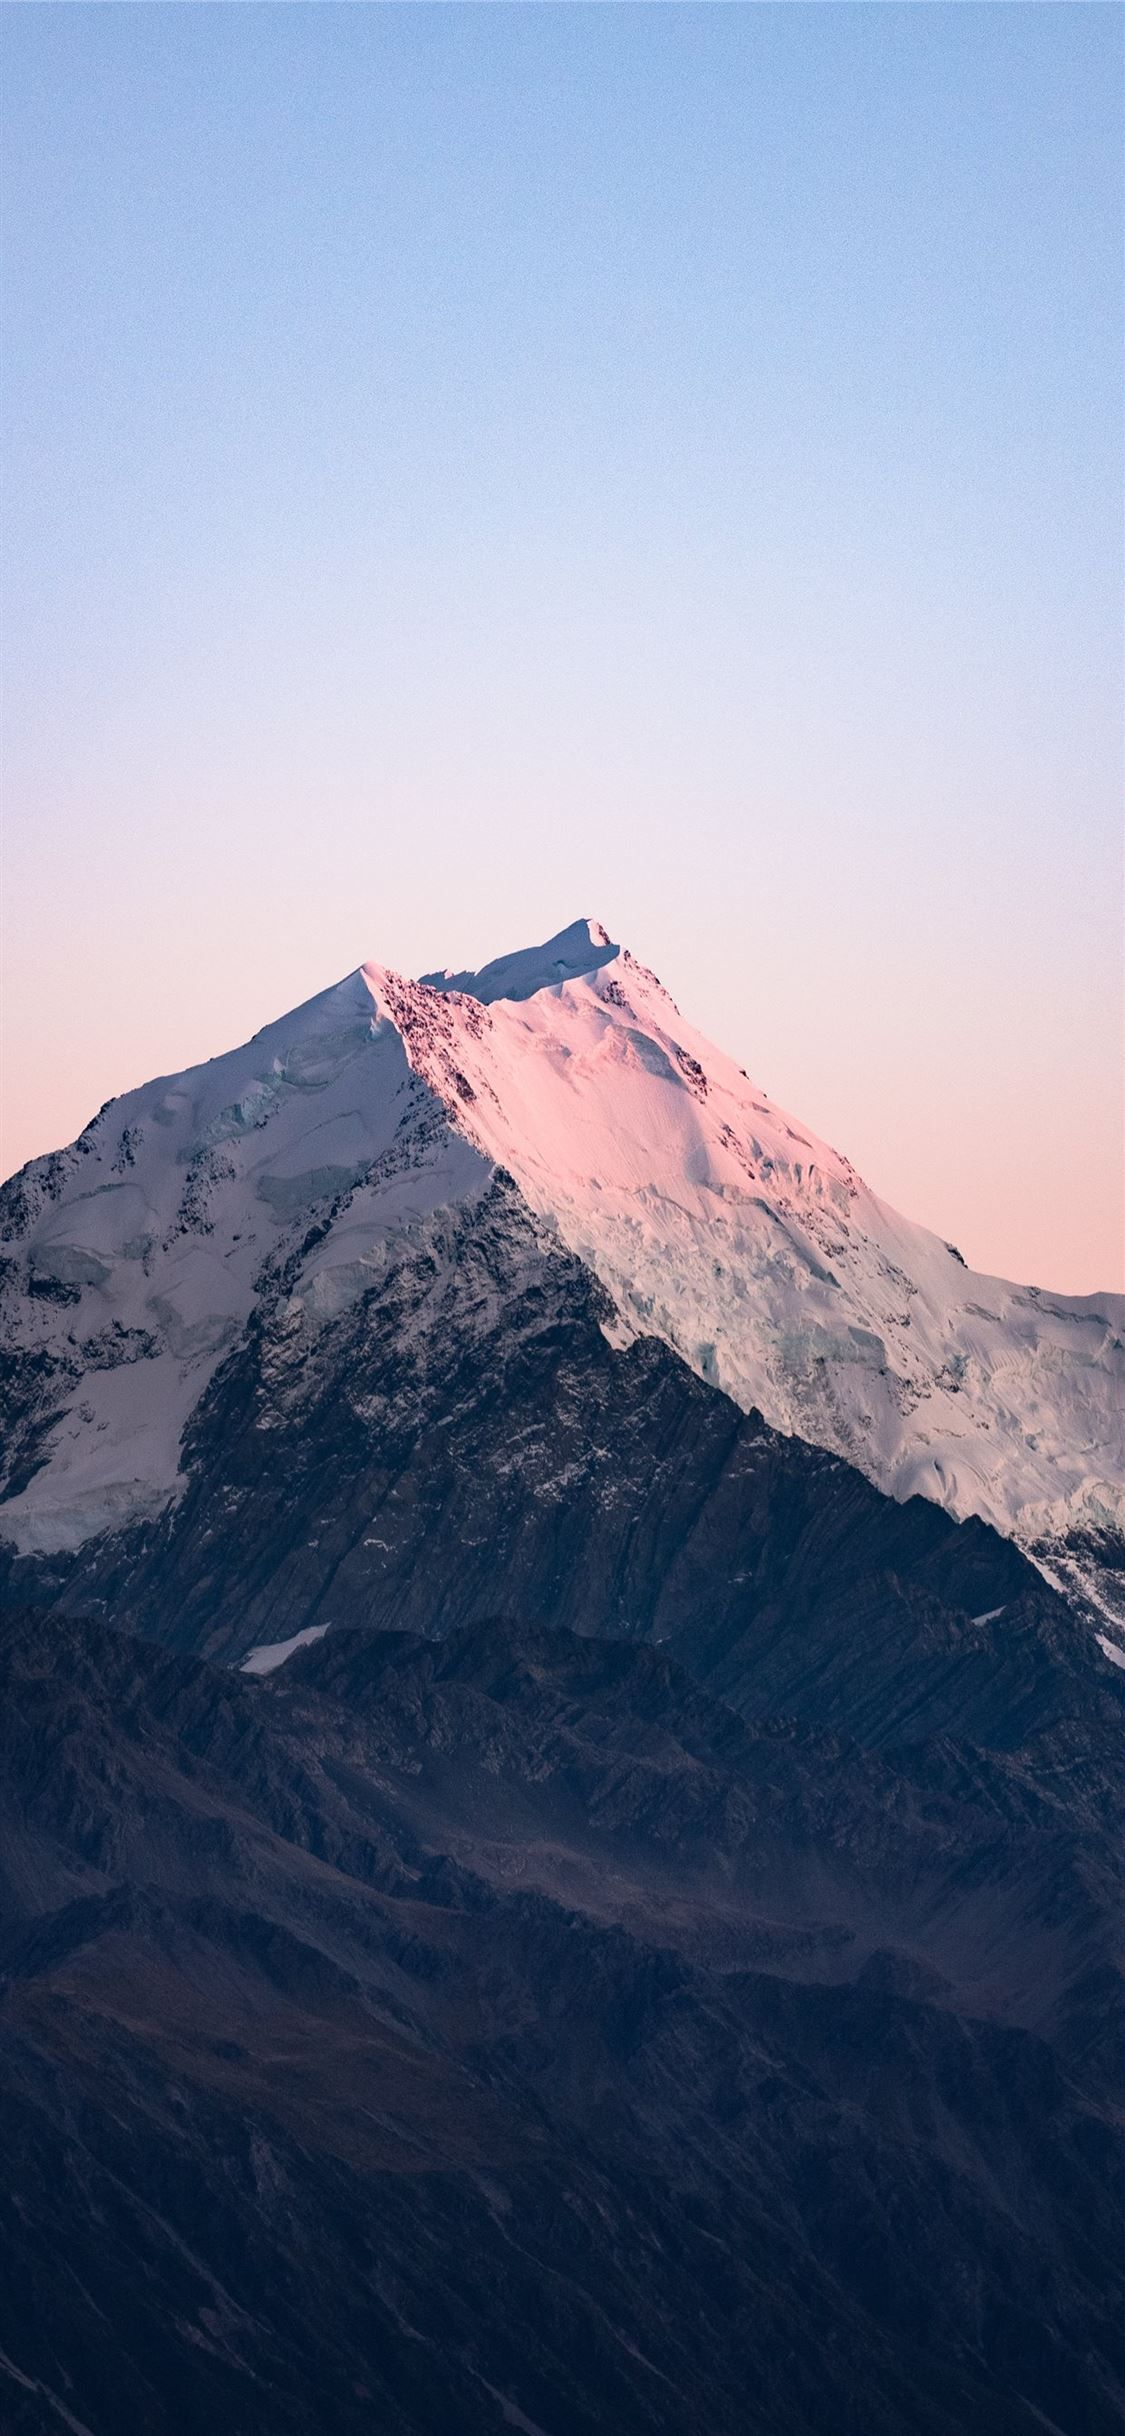 Ice Capped Mountain At Daytime Mountain Nature Snow Iphonexwallpaper Iphone Wallpaper Mountains Cool Wallpapers For Phones Stock Wallpaper Android mountains wallpapers 47